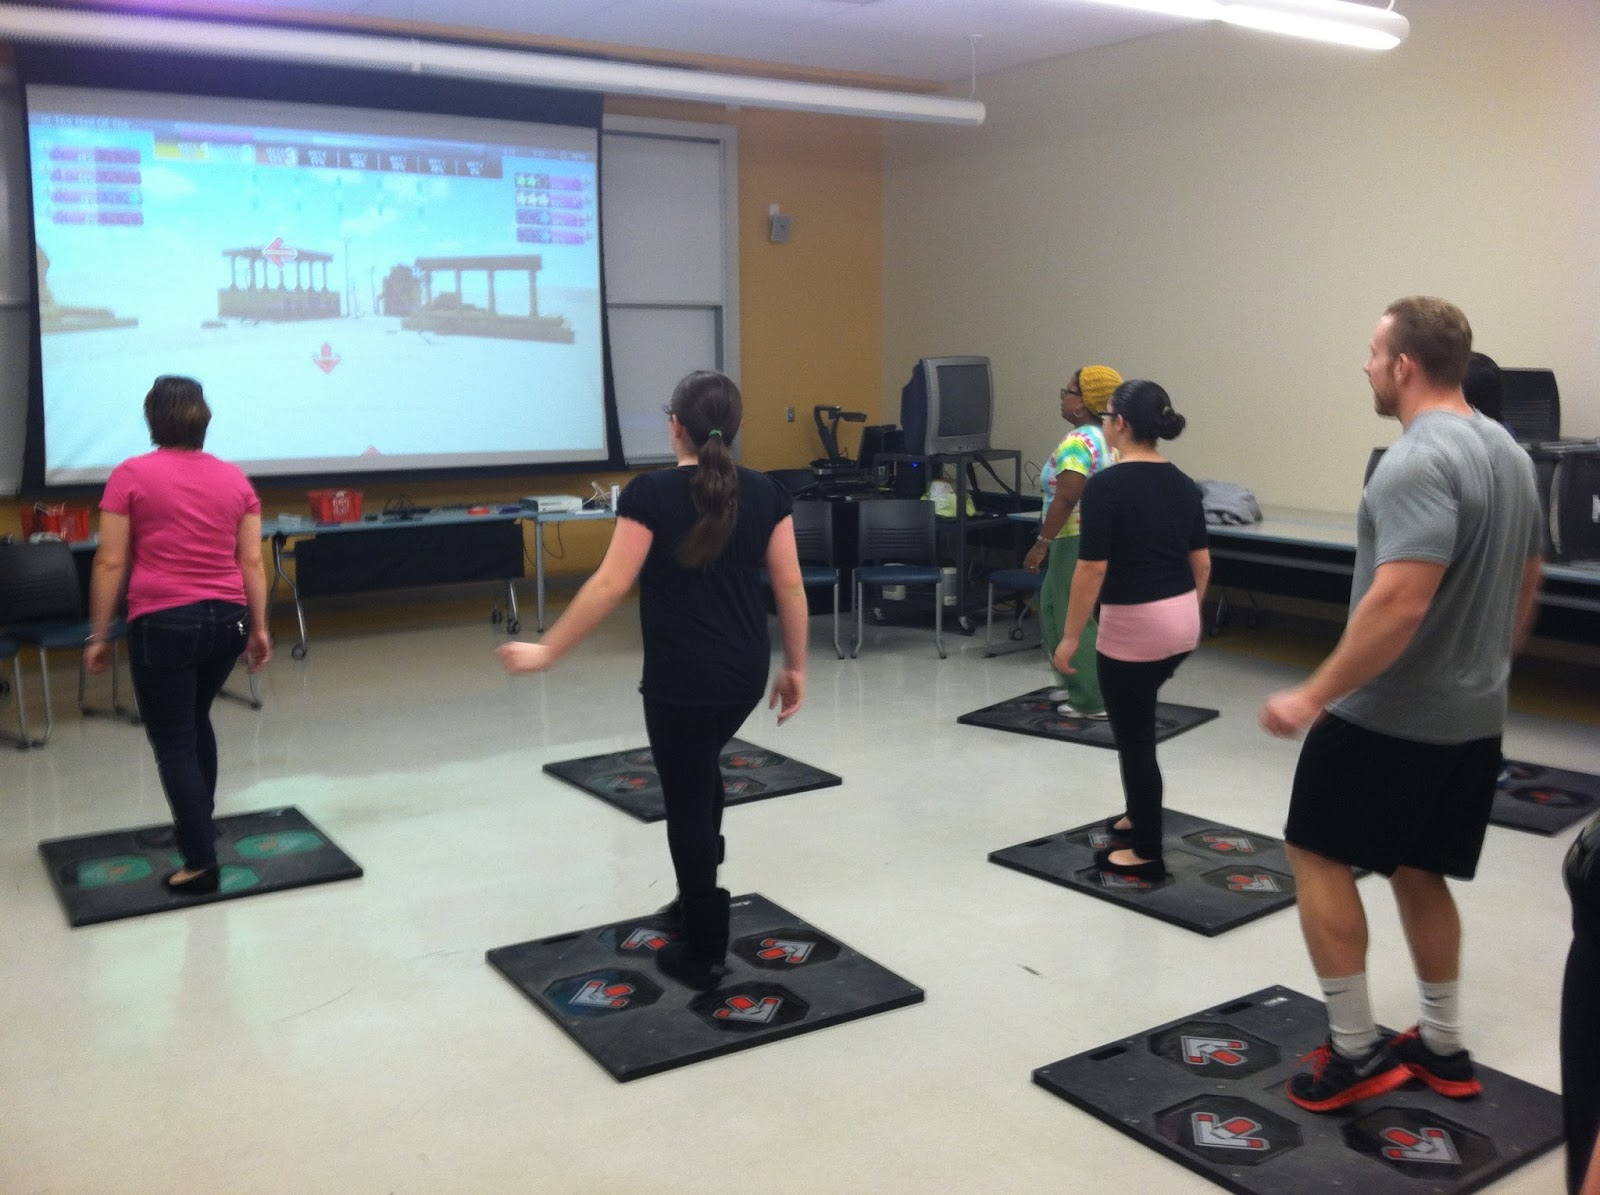 exergaming as physical activity